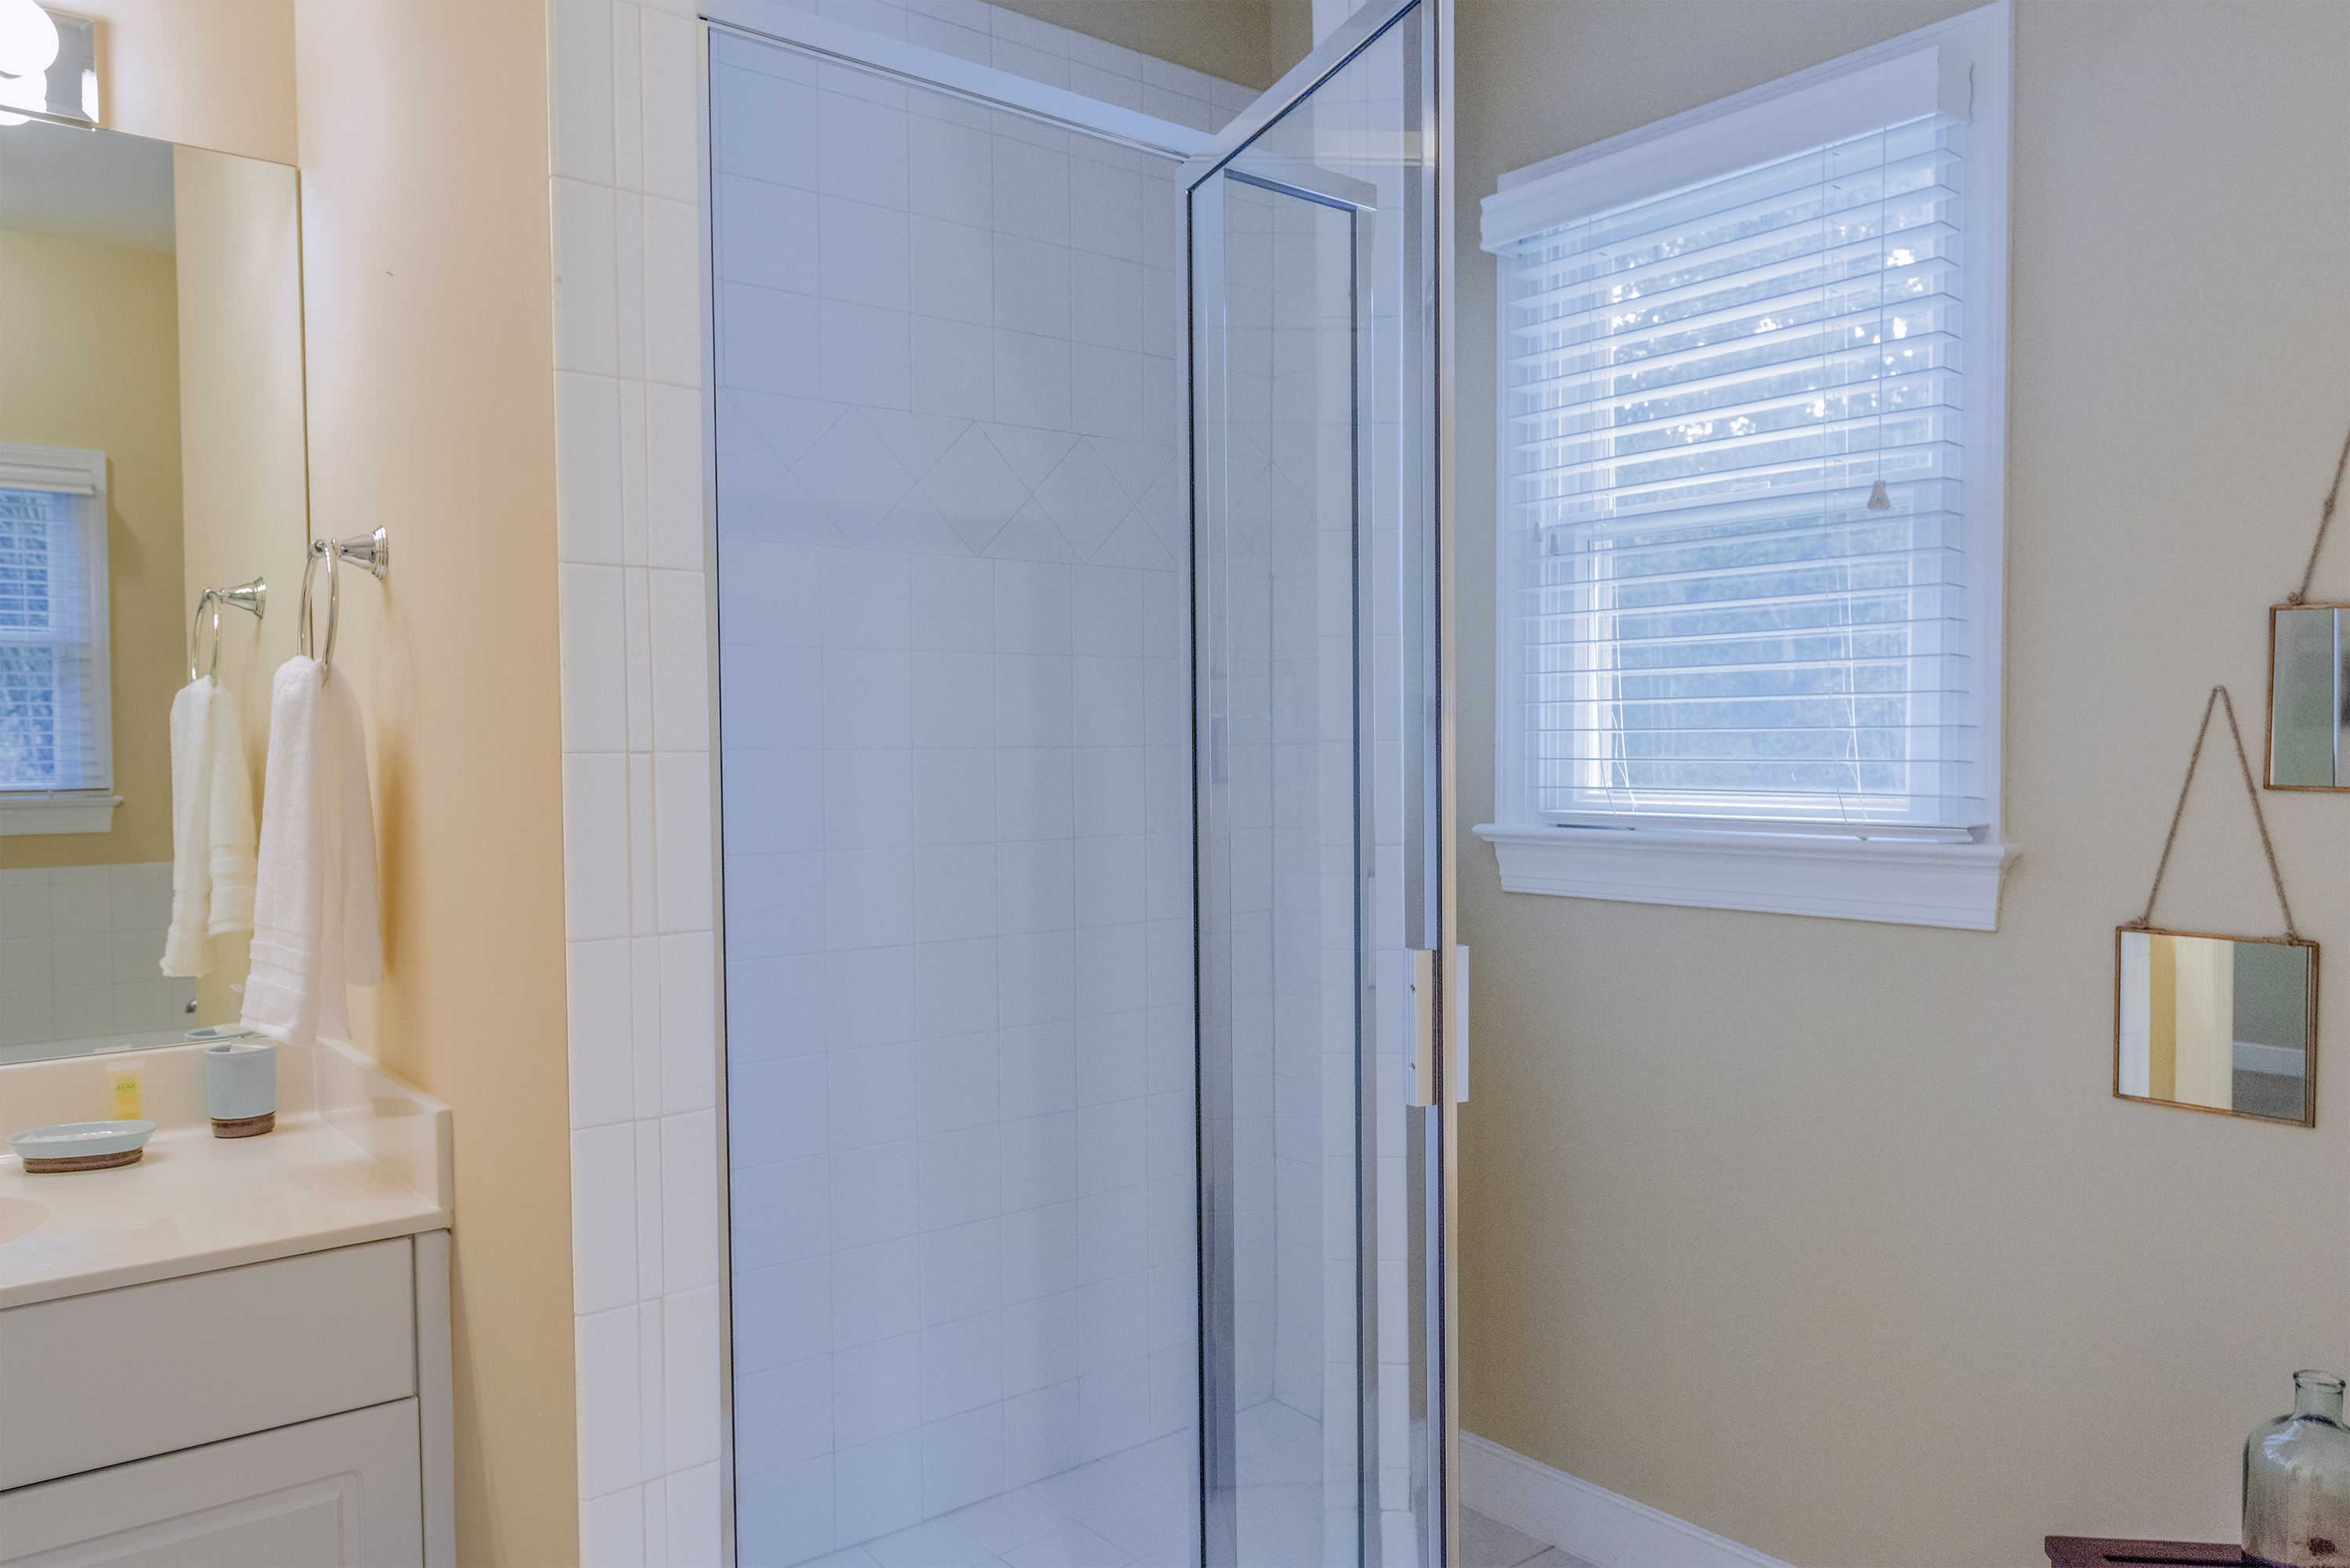 The nearby bathroom has a shower and vanity with granite.